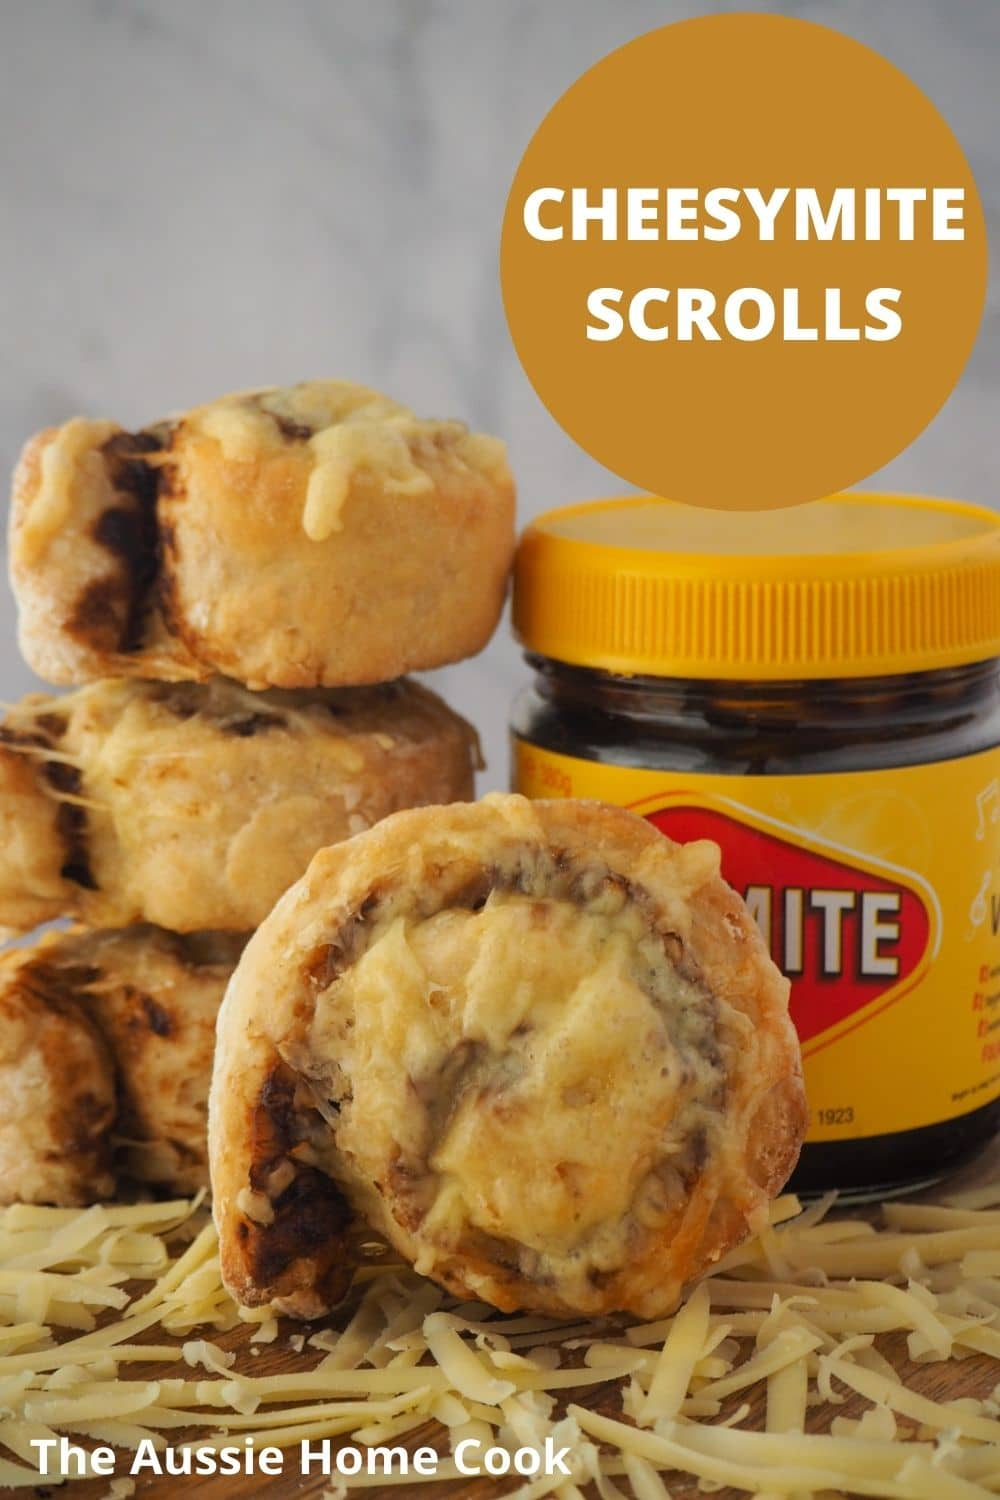 Scroll with stack of scrolls and jar of vegemite at the back, grated cheese and the front and text overlay, cheesymite scrolls and The Aussie Home Cook.